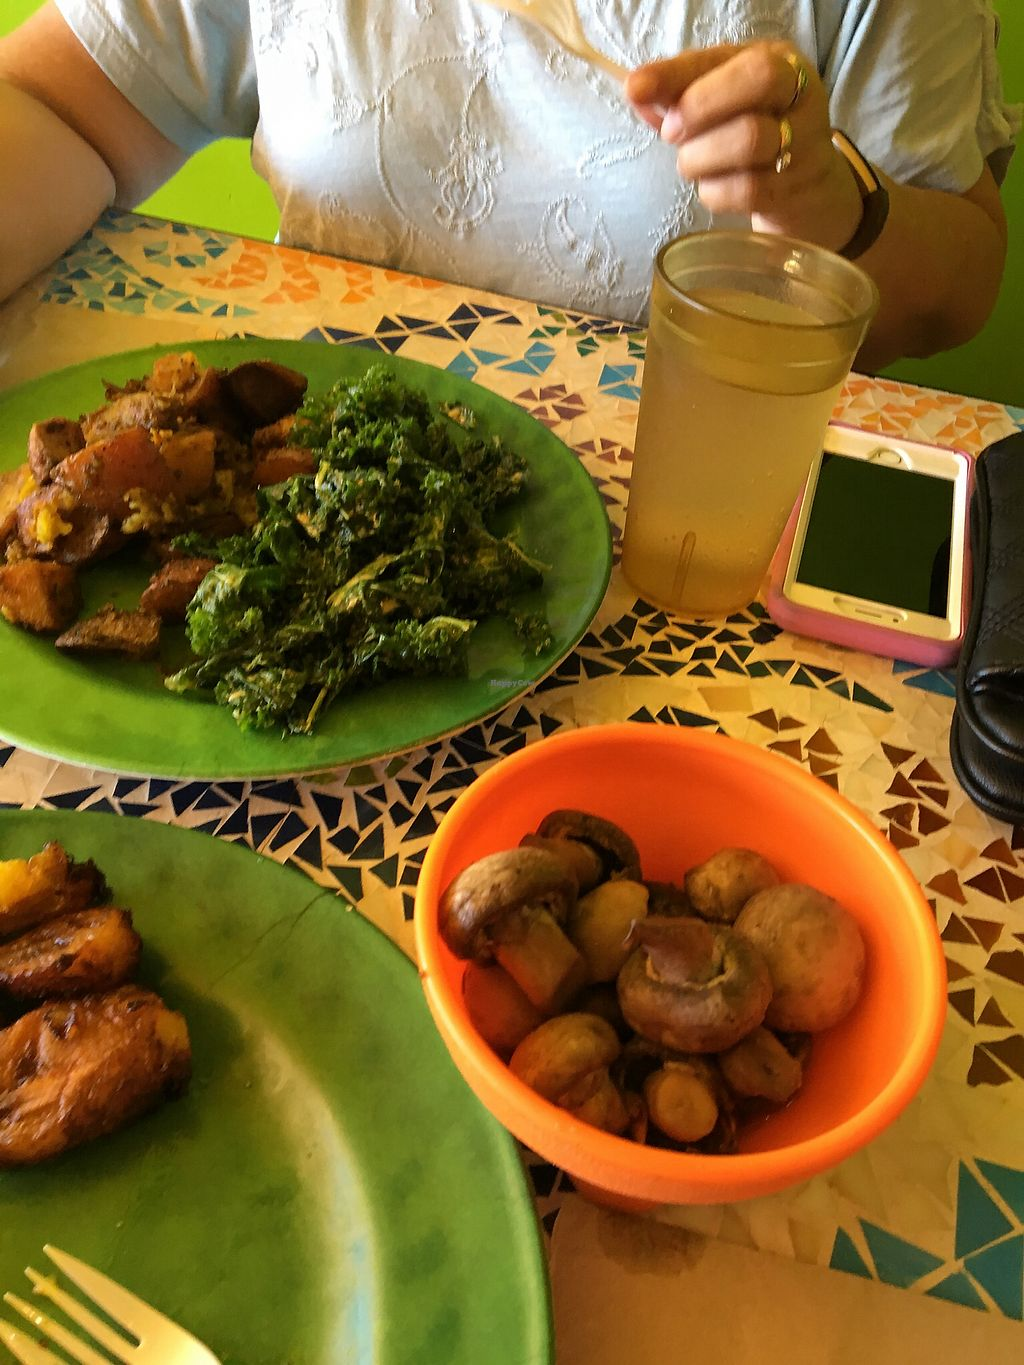 """Photo of Kale Cafe  by <a href=""""/members/profile/mikey725"""">mikey725</a> <br/>Spicy mushrooms, kale salad and potatoes  <br/> October 17, 2017  - <a href='/contact/abuse/image/42862/316195'>Report</a>"""